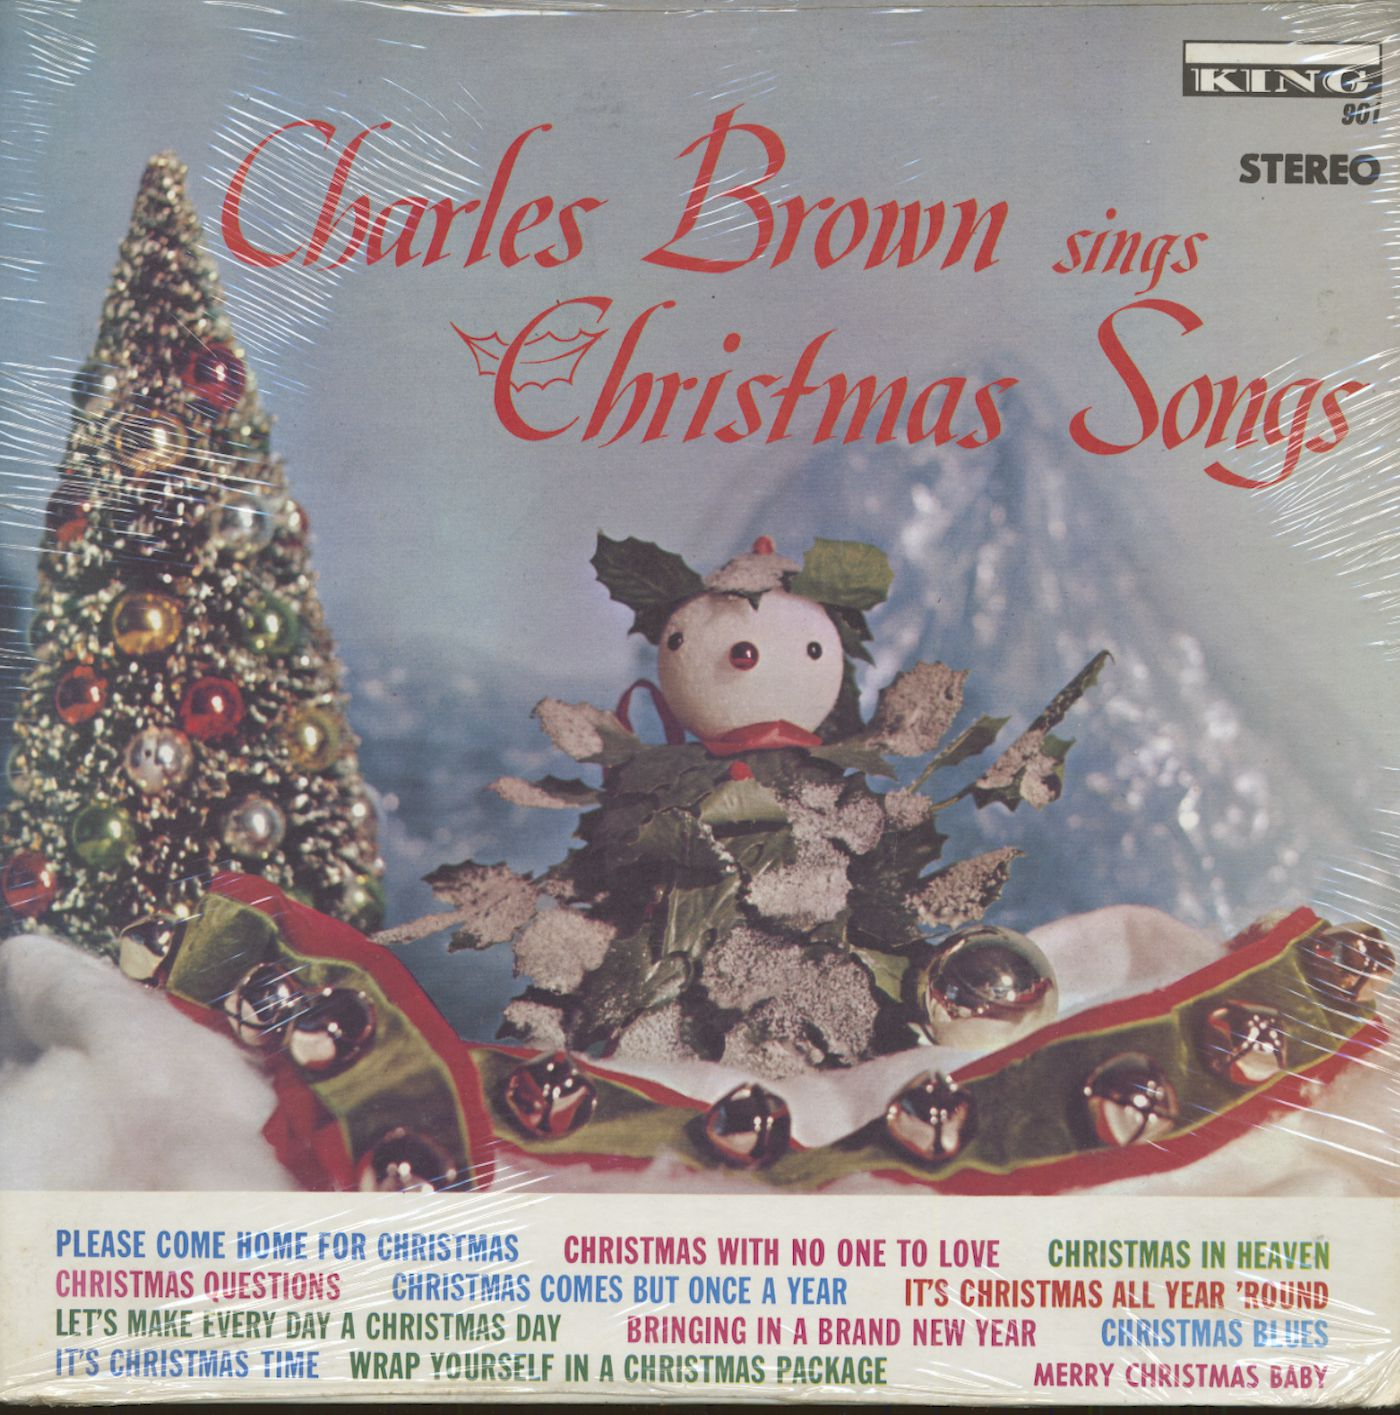 Charles brown please come home for christmas - Charles Brown Lp Charles Brown Sings Christmas Songs Lp Bear Family Records